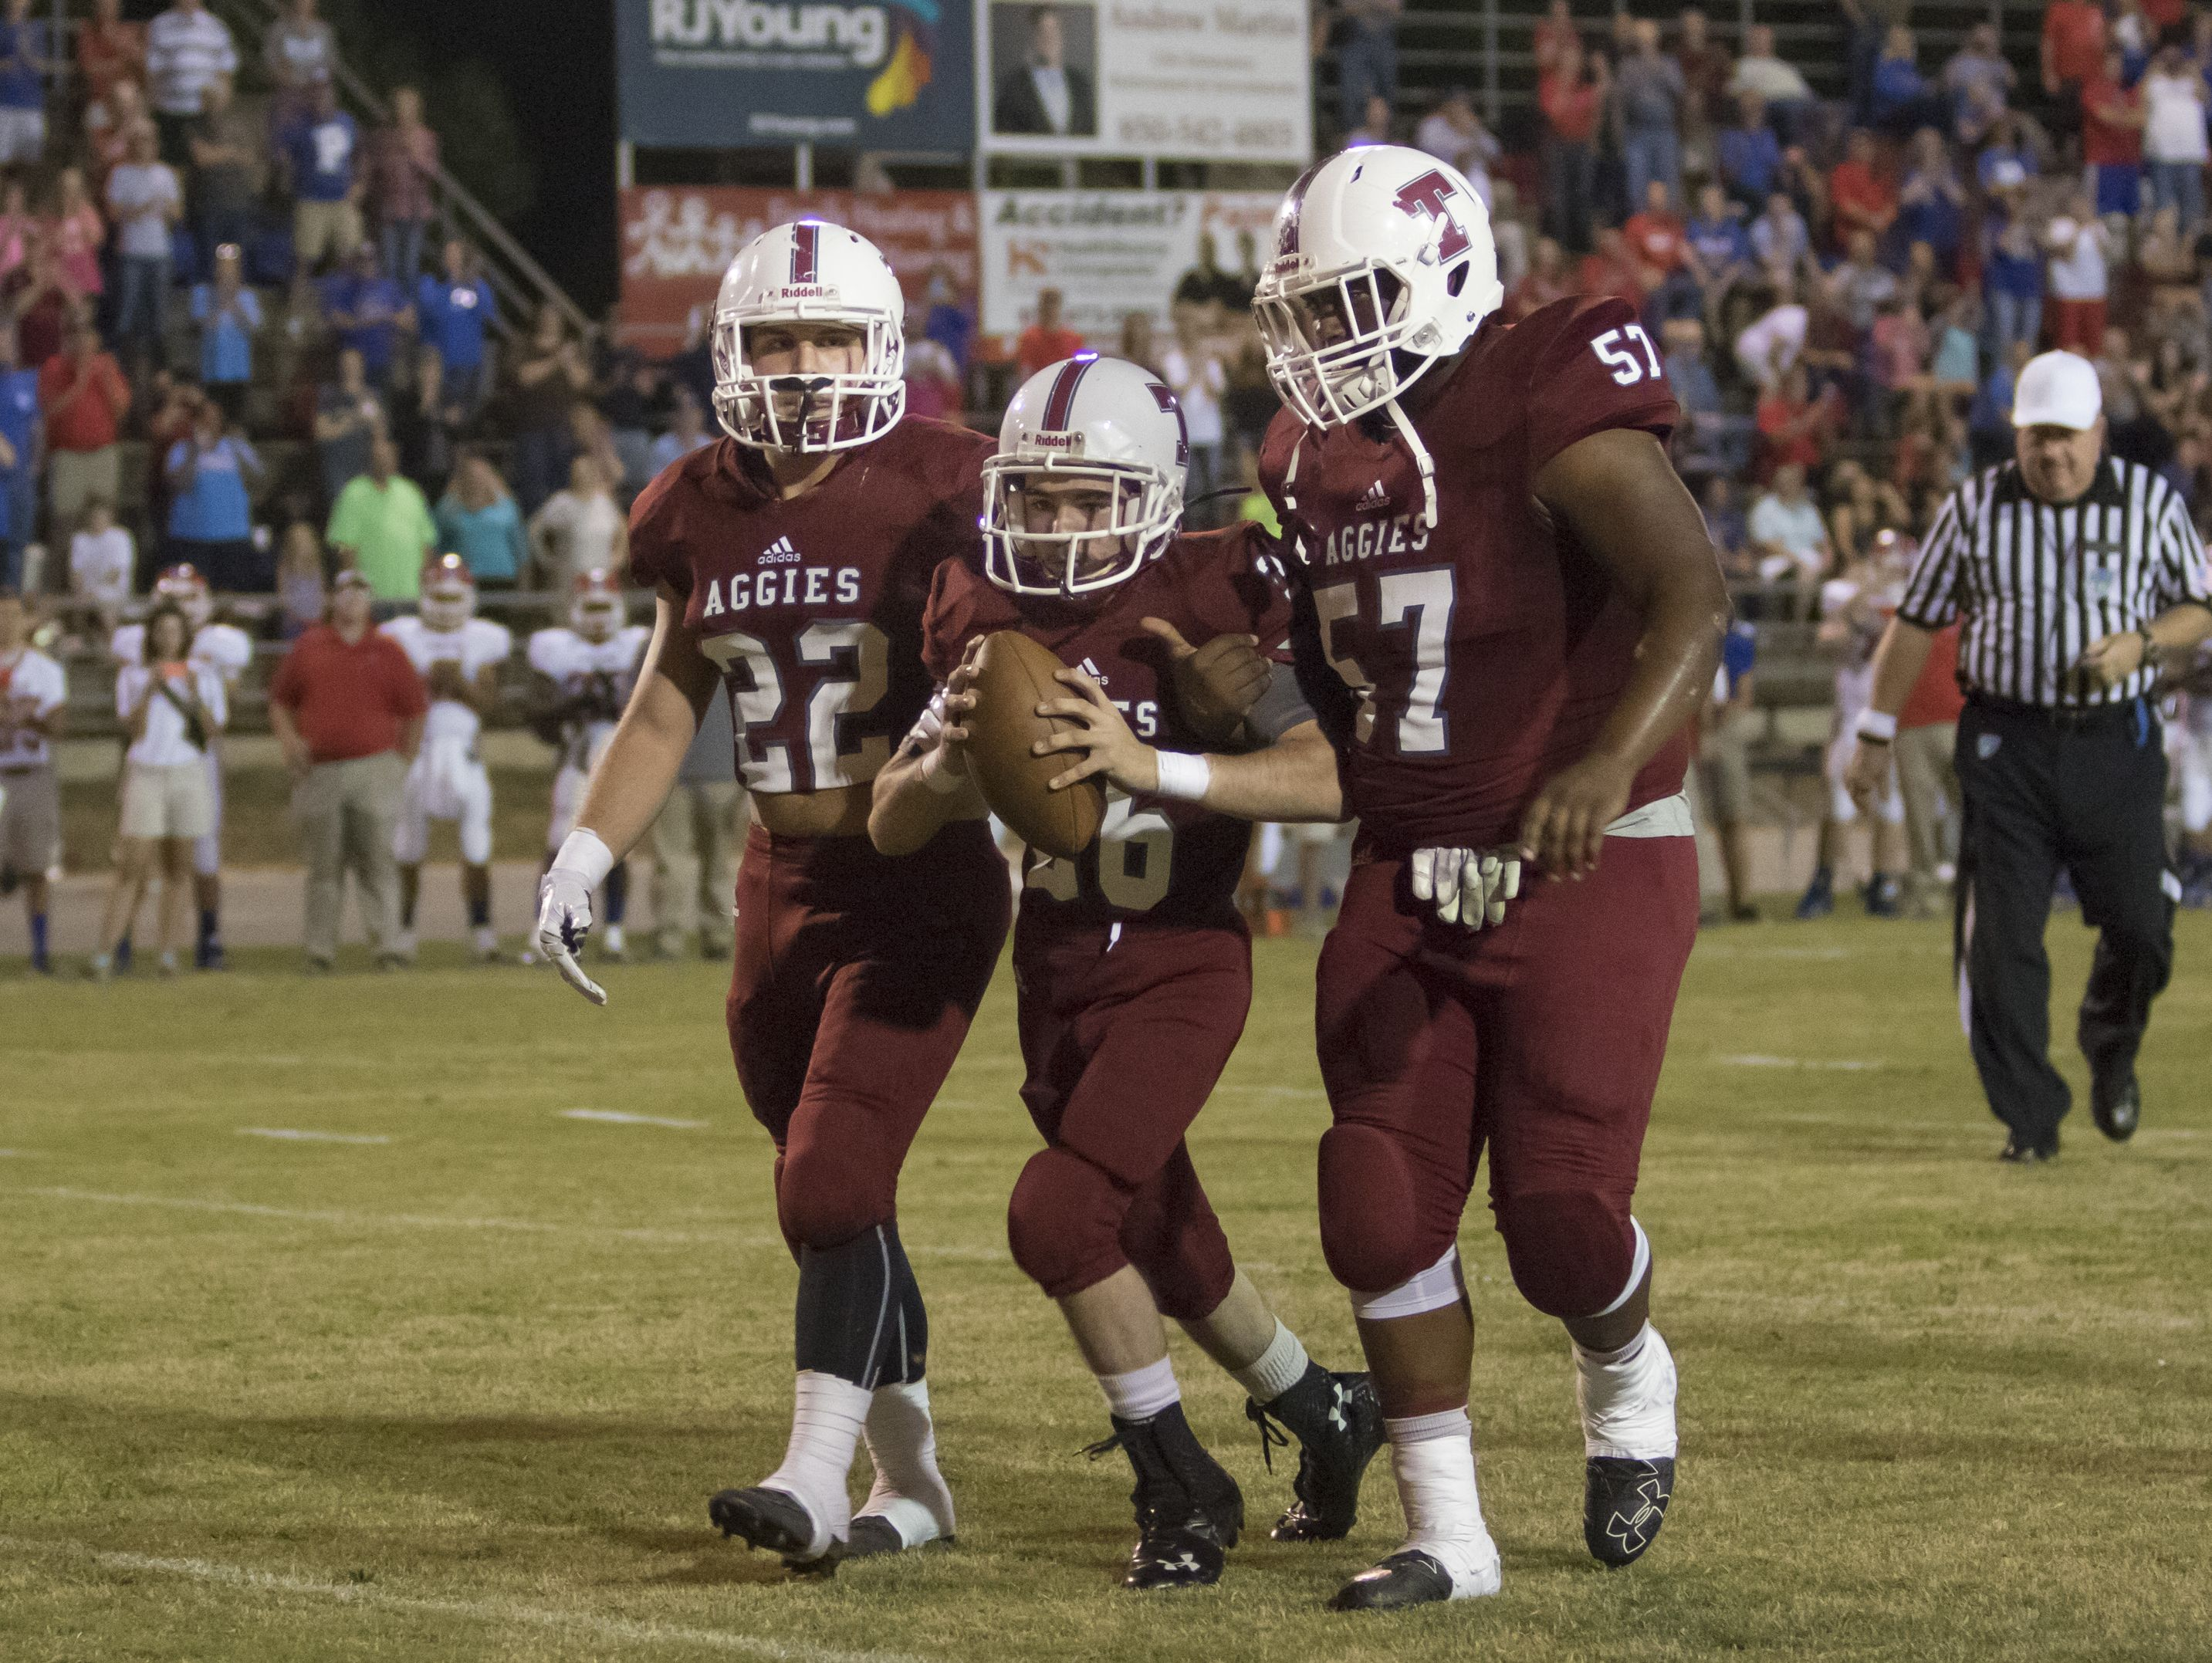 Jake Henry (16) hands off to honorary football player Markus Baxley(26), a student with cerebral palsy, as teammates Dylan Foxhall (22) and Evan Allen (57) carry him to a touchdown prior to the game against Pace High School in Pensacola on Friday, October 7, 2016.